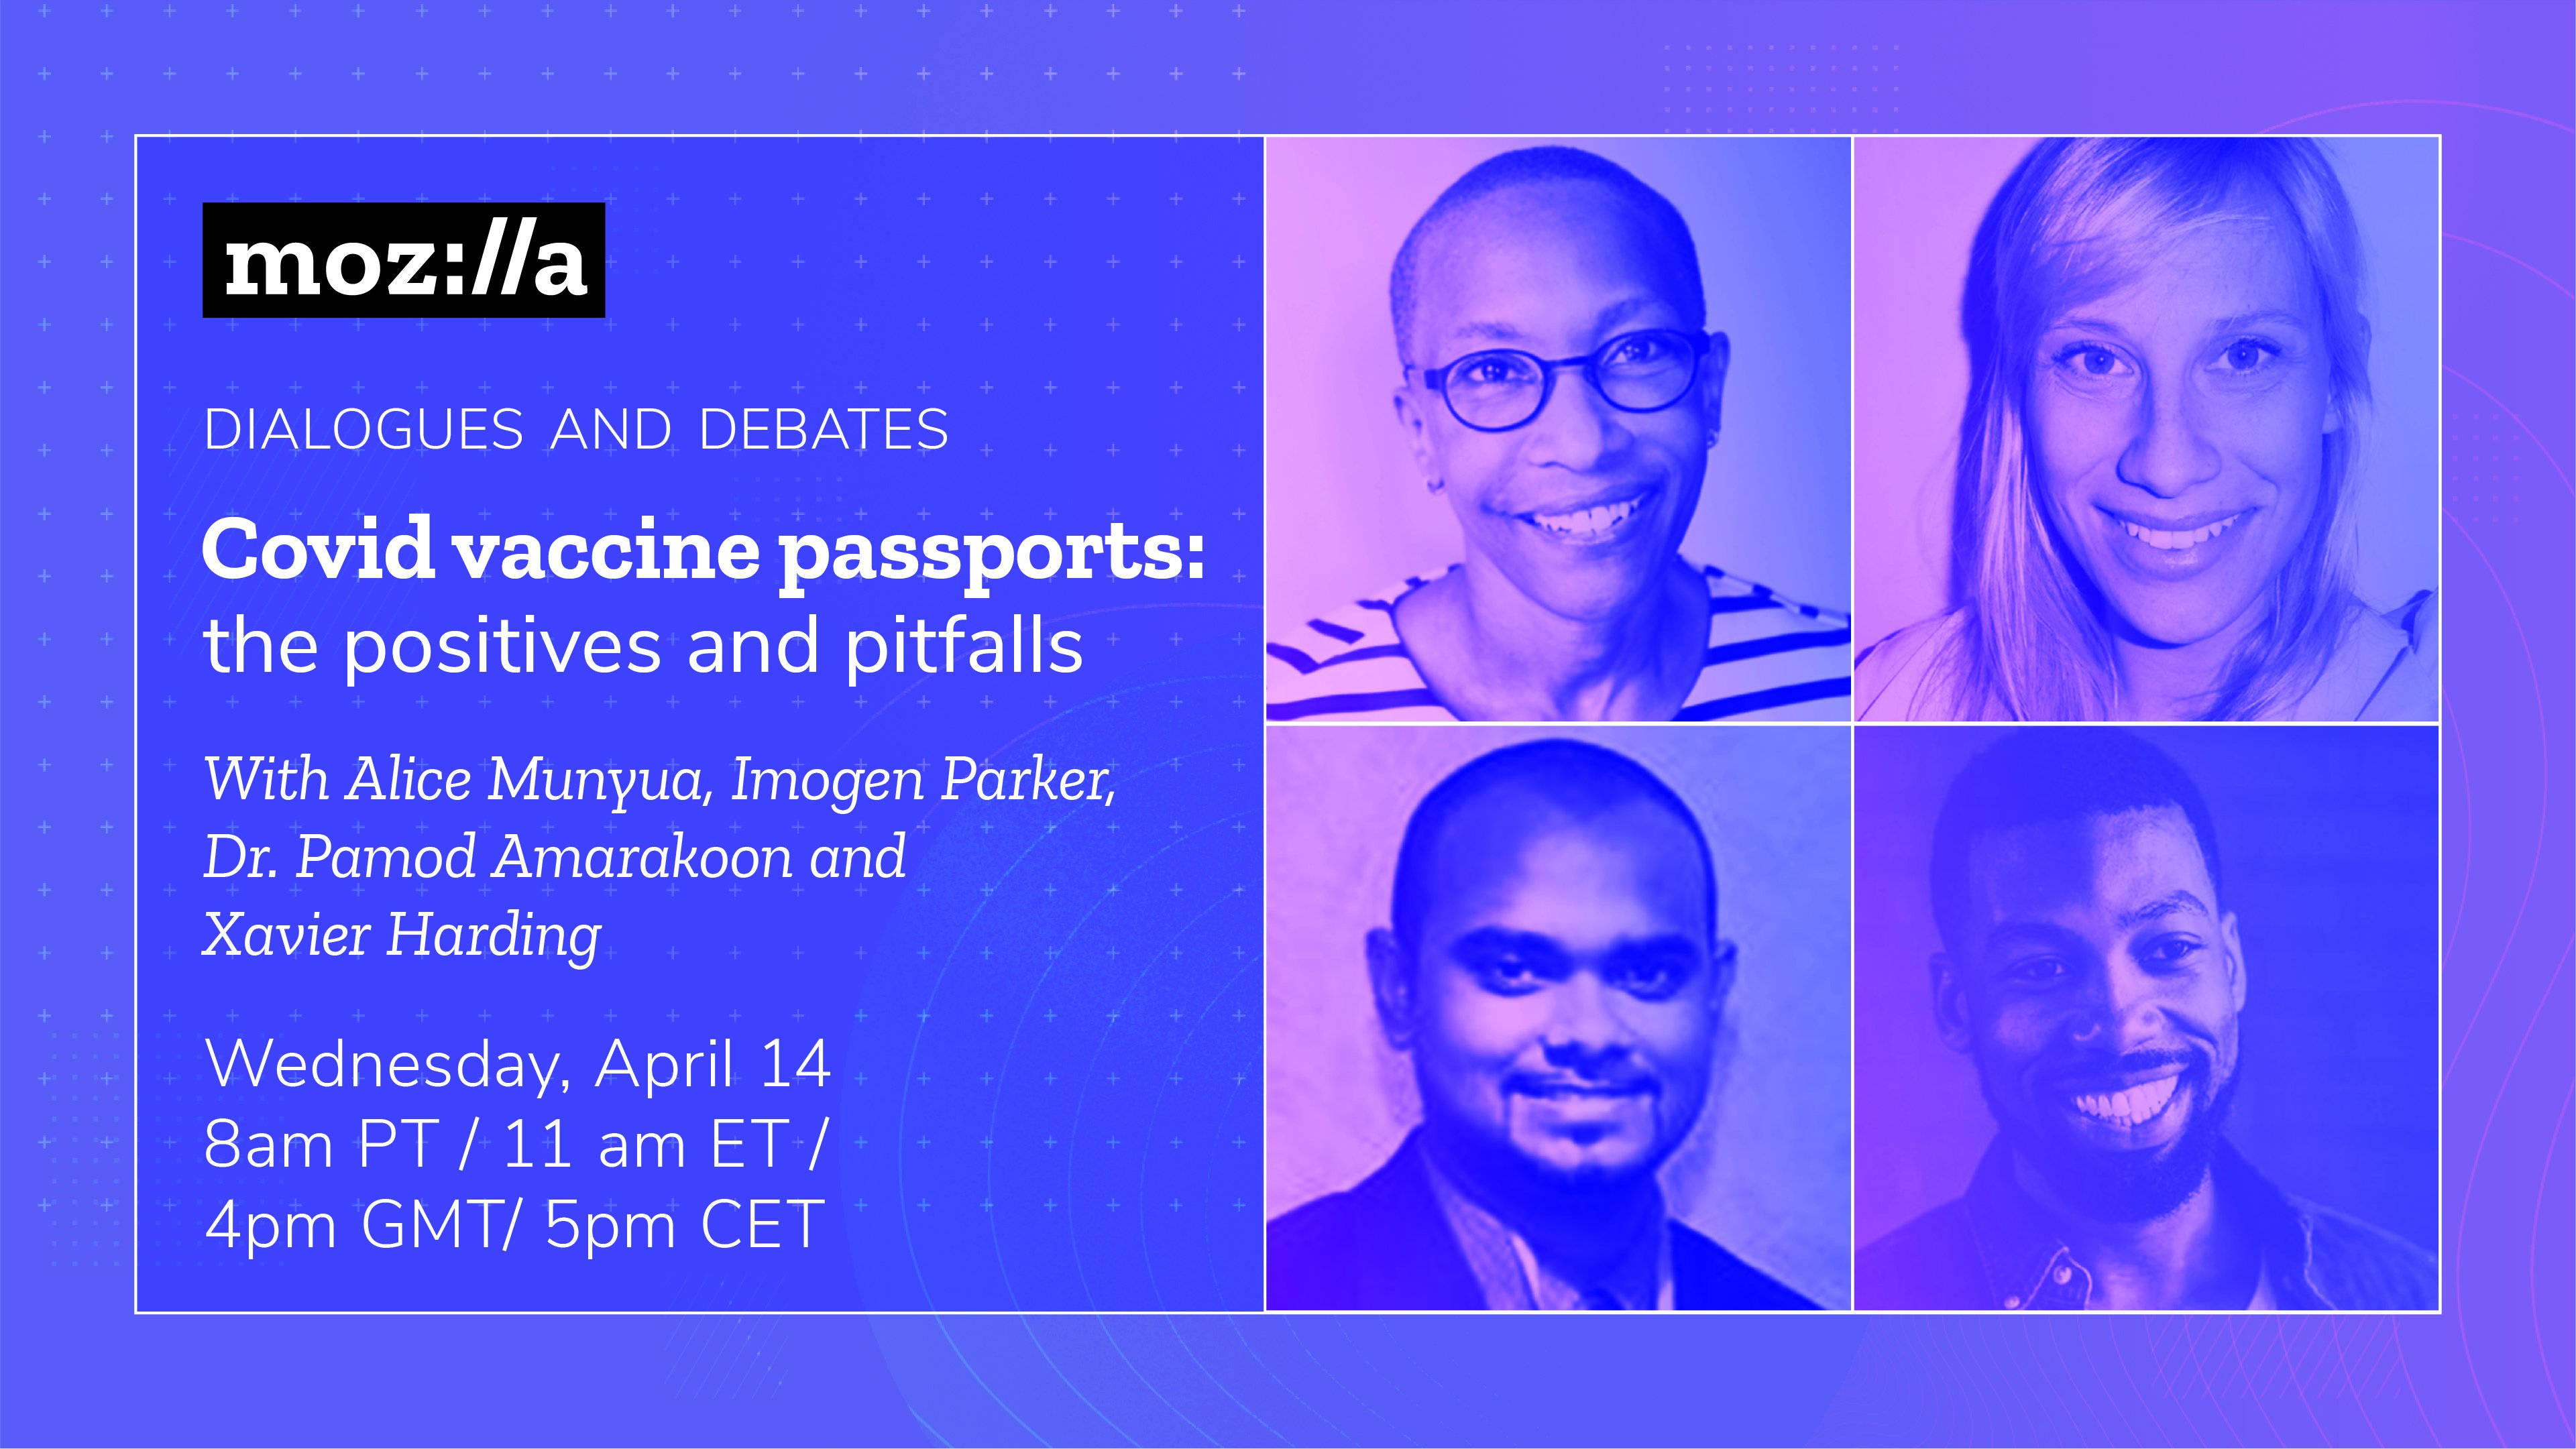 Dialogues and Debates: Covid Vaccine Passports on April 14